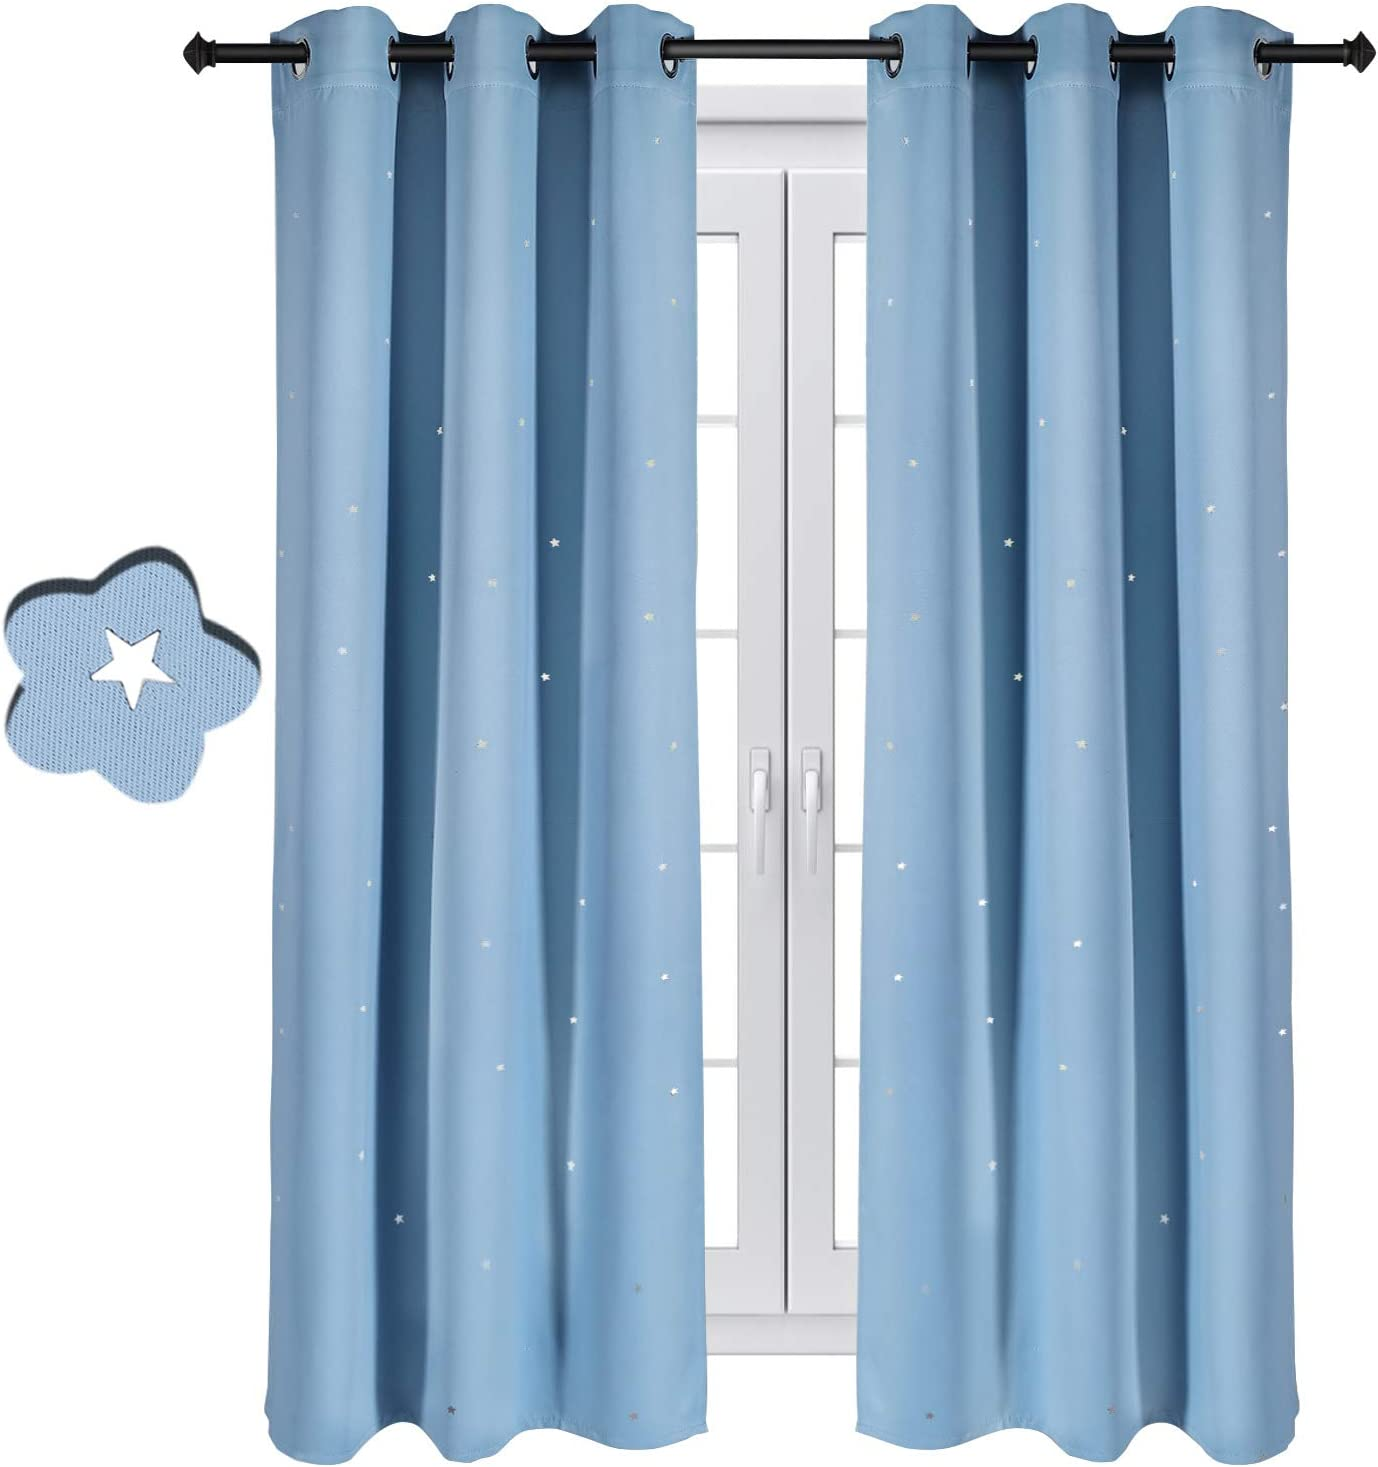 Fancy Star Blackout Curtains for Kids Bedroom Living Room Star Curtains Boys Room Girls Set of 2 Panels Baby Room Hi 42 x 63 Inches, Baby Blue